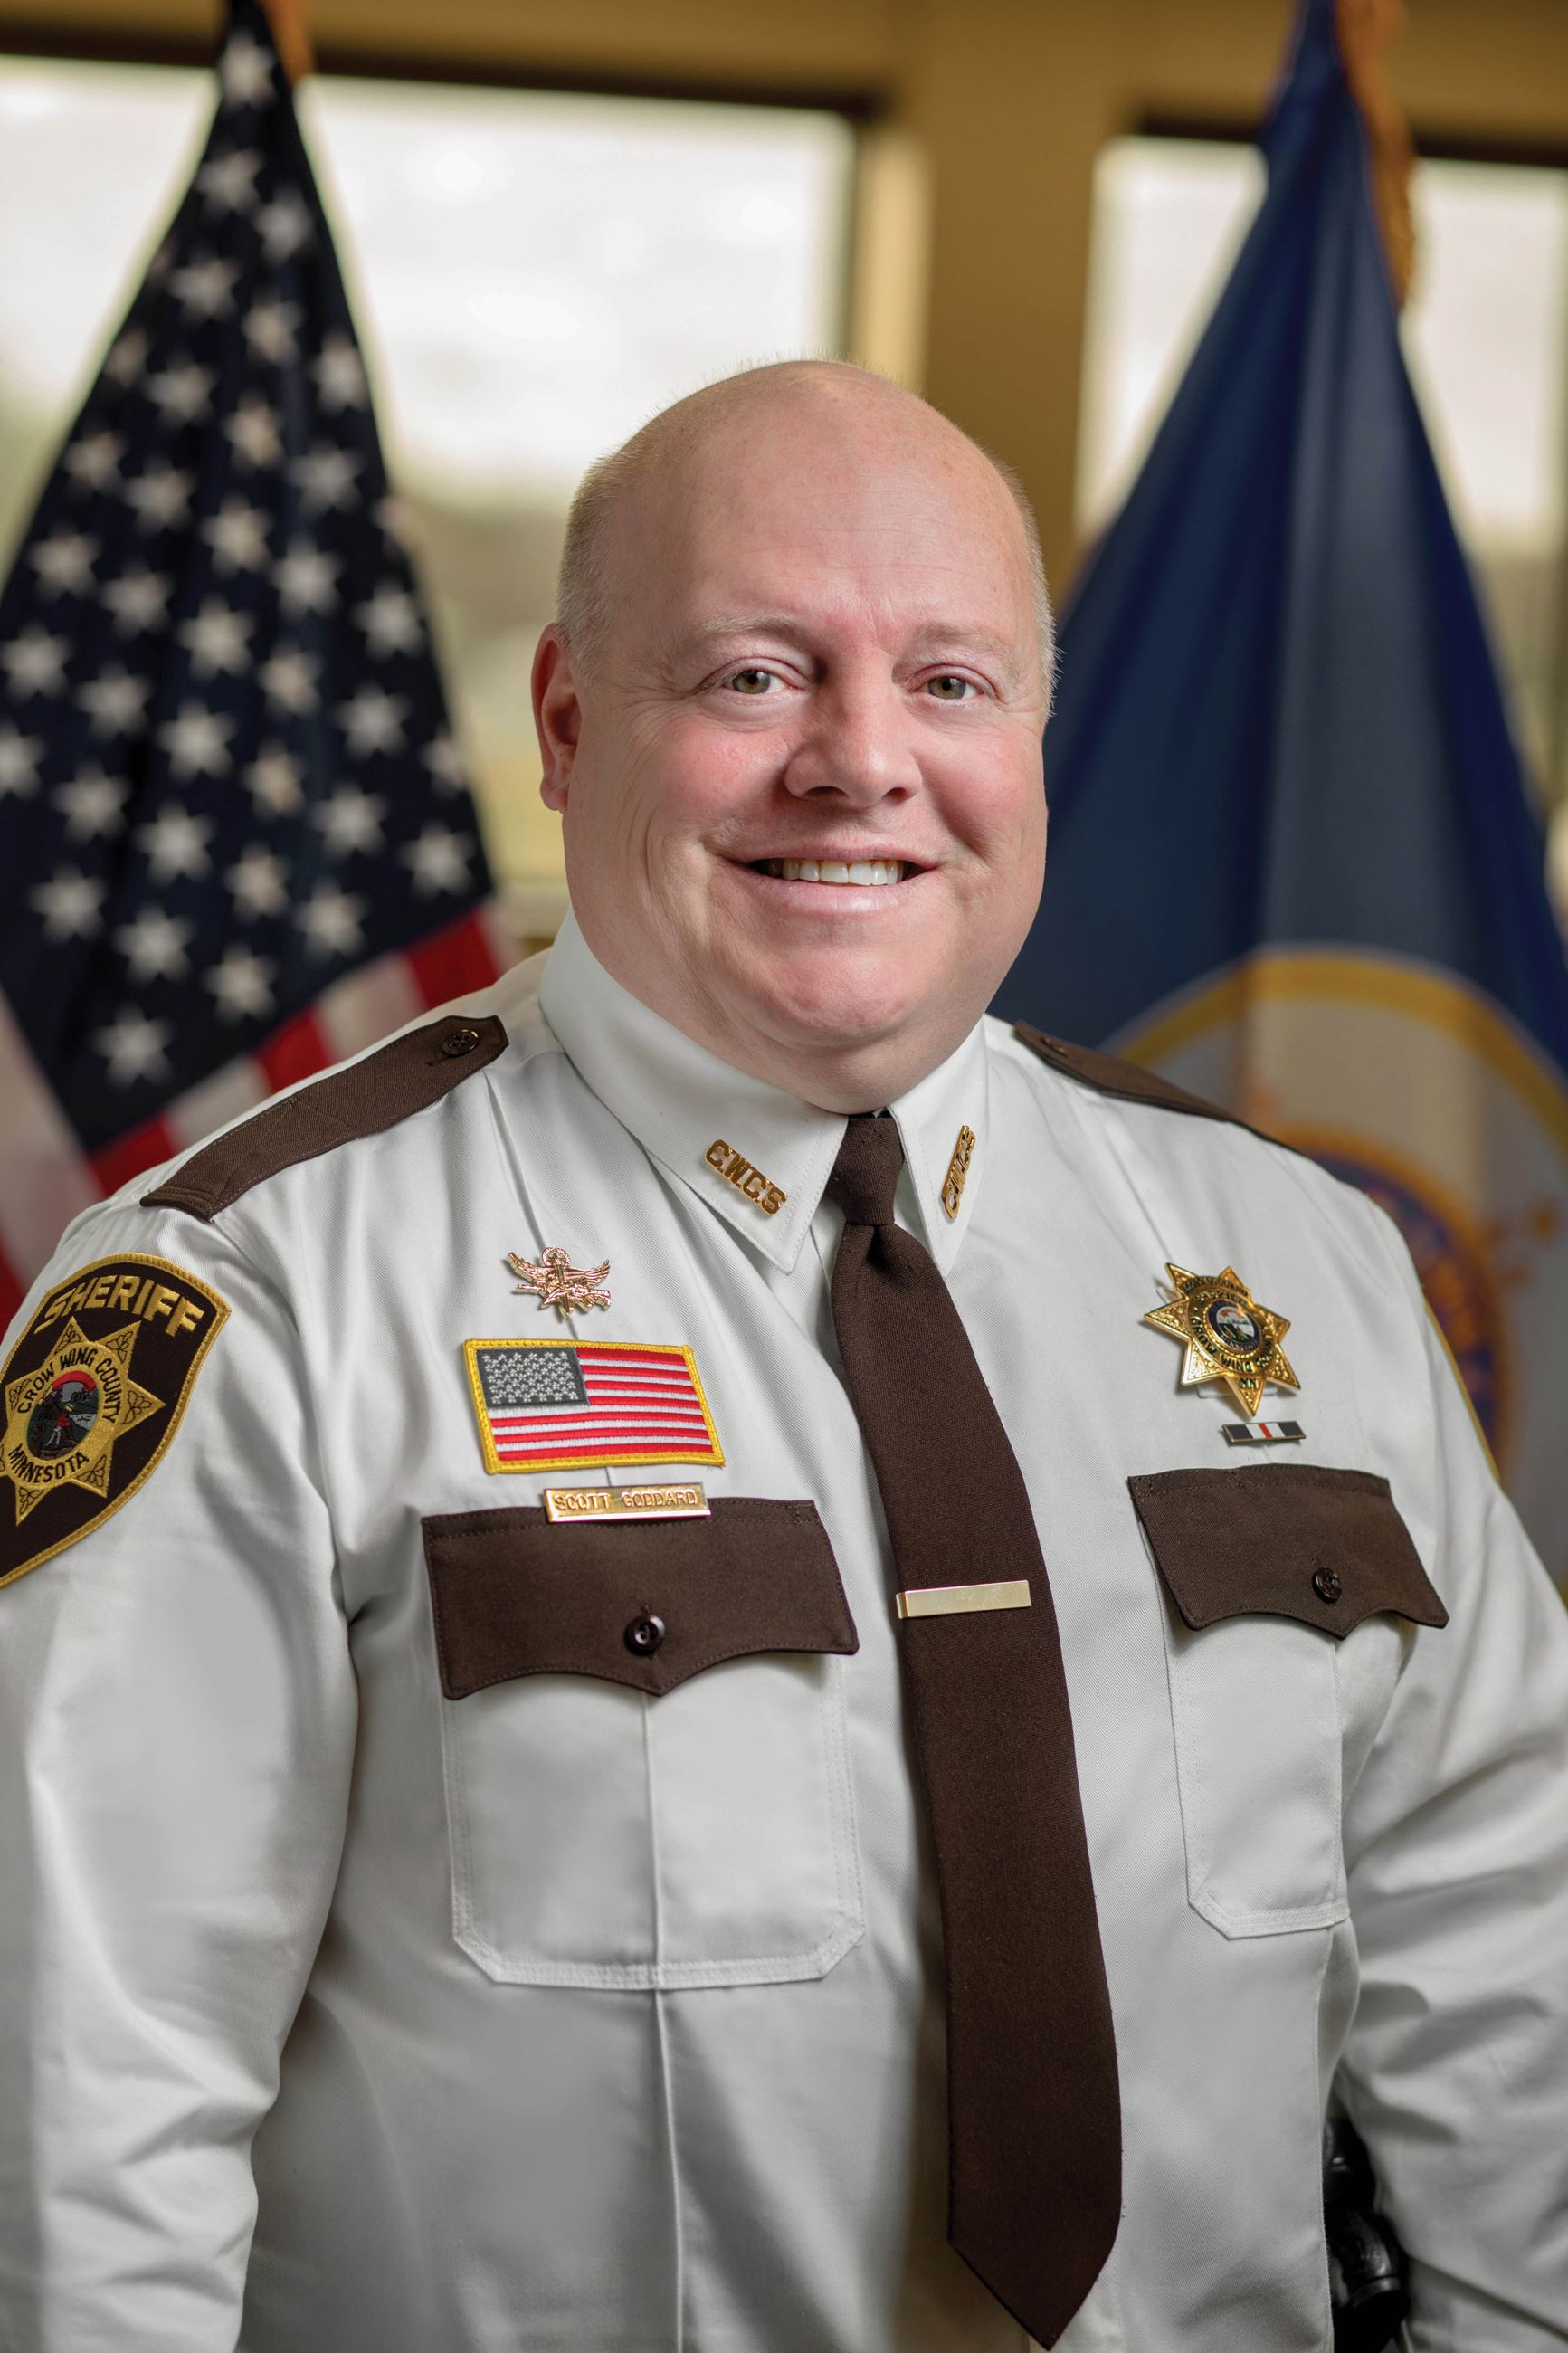 Sheriff Scott Goddard